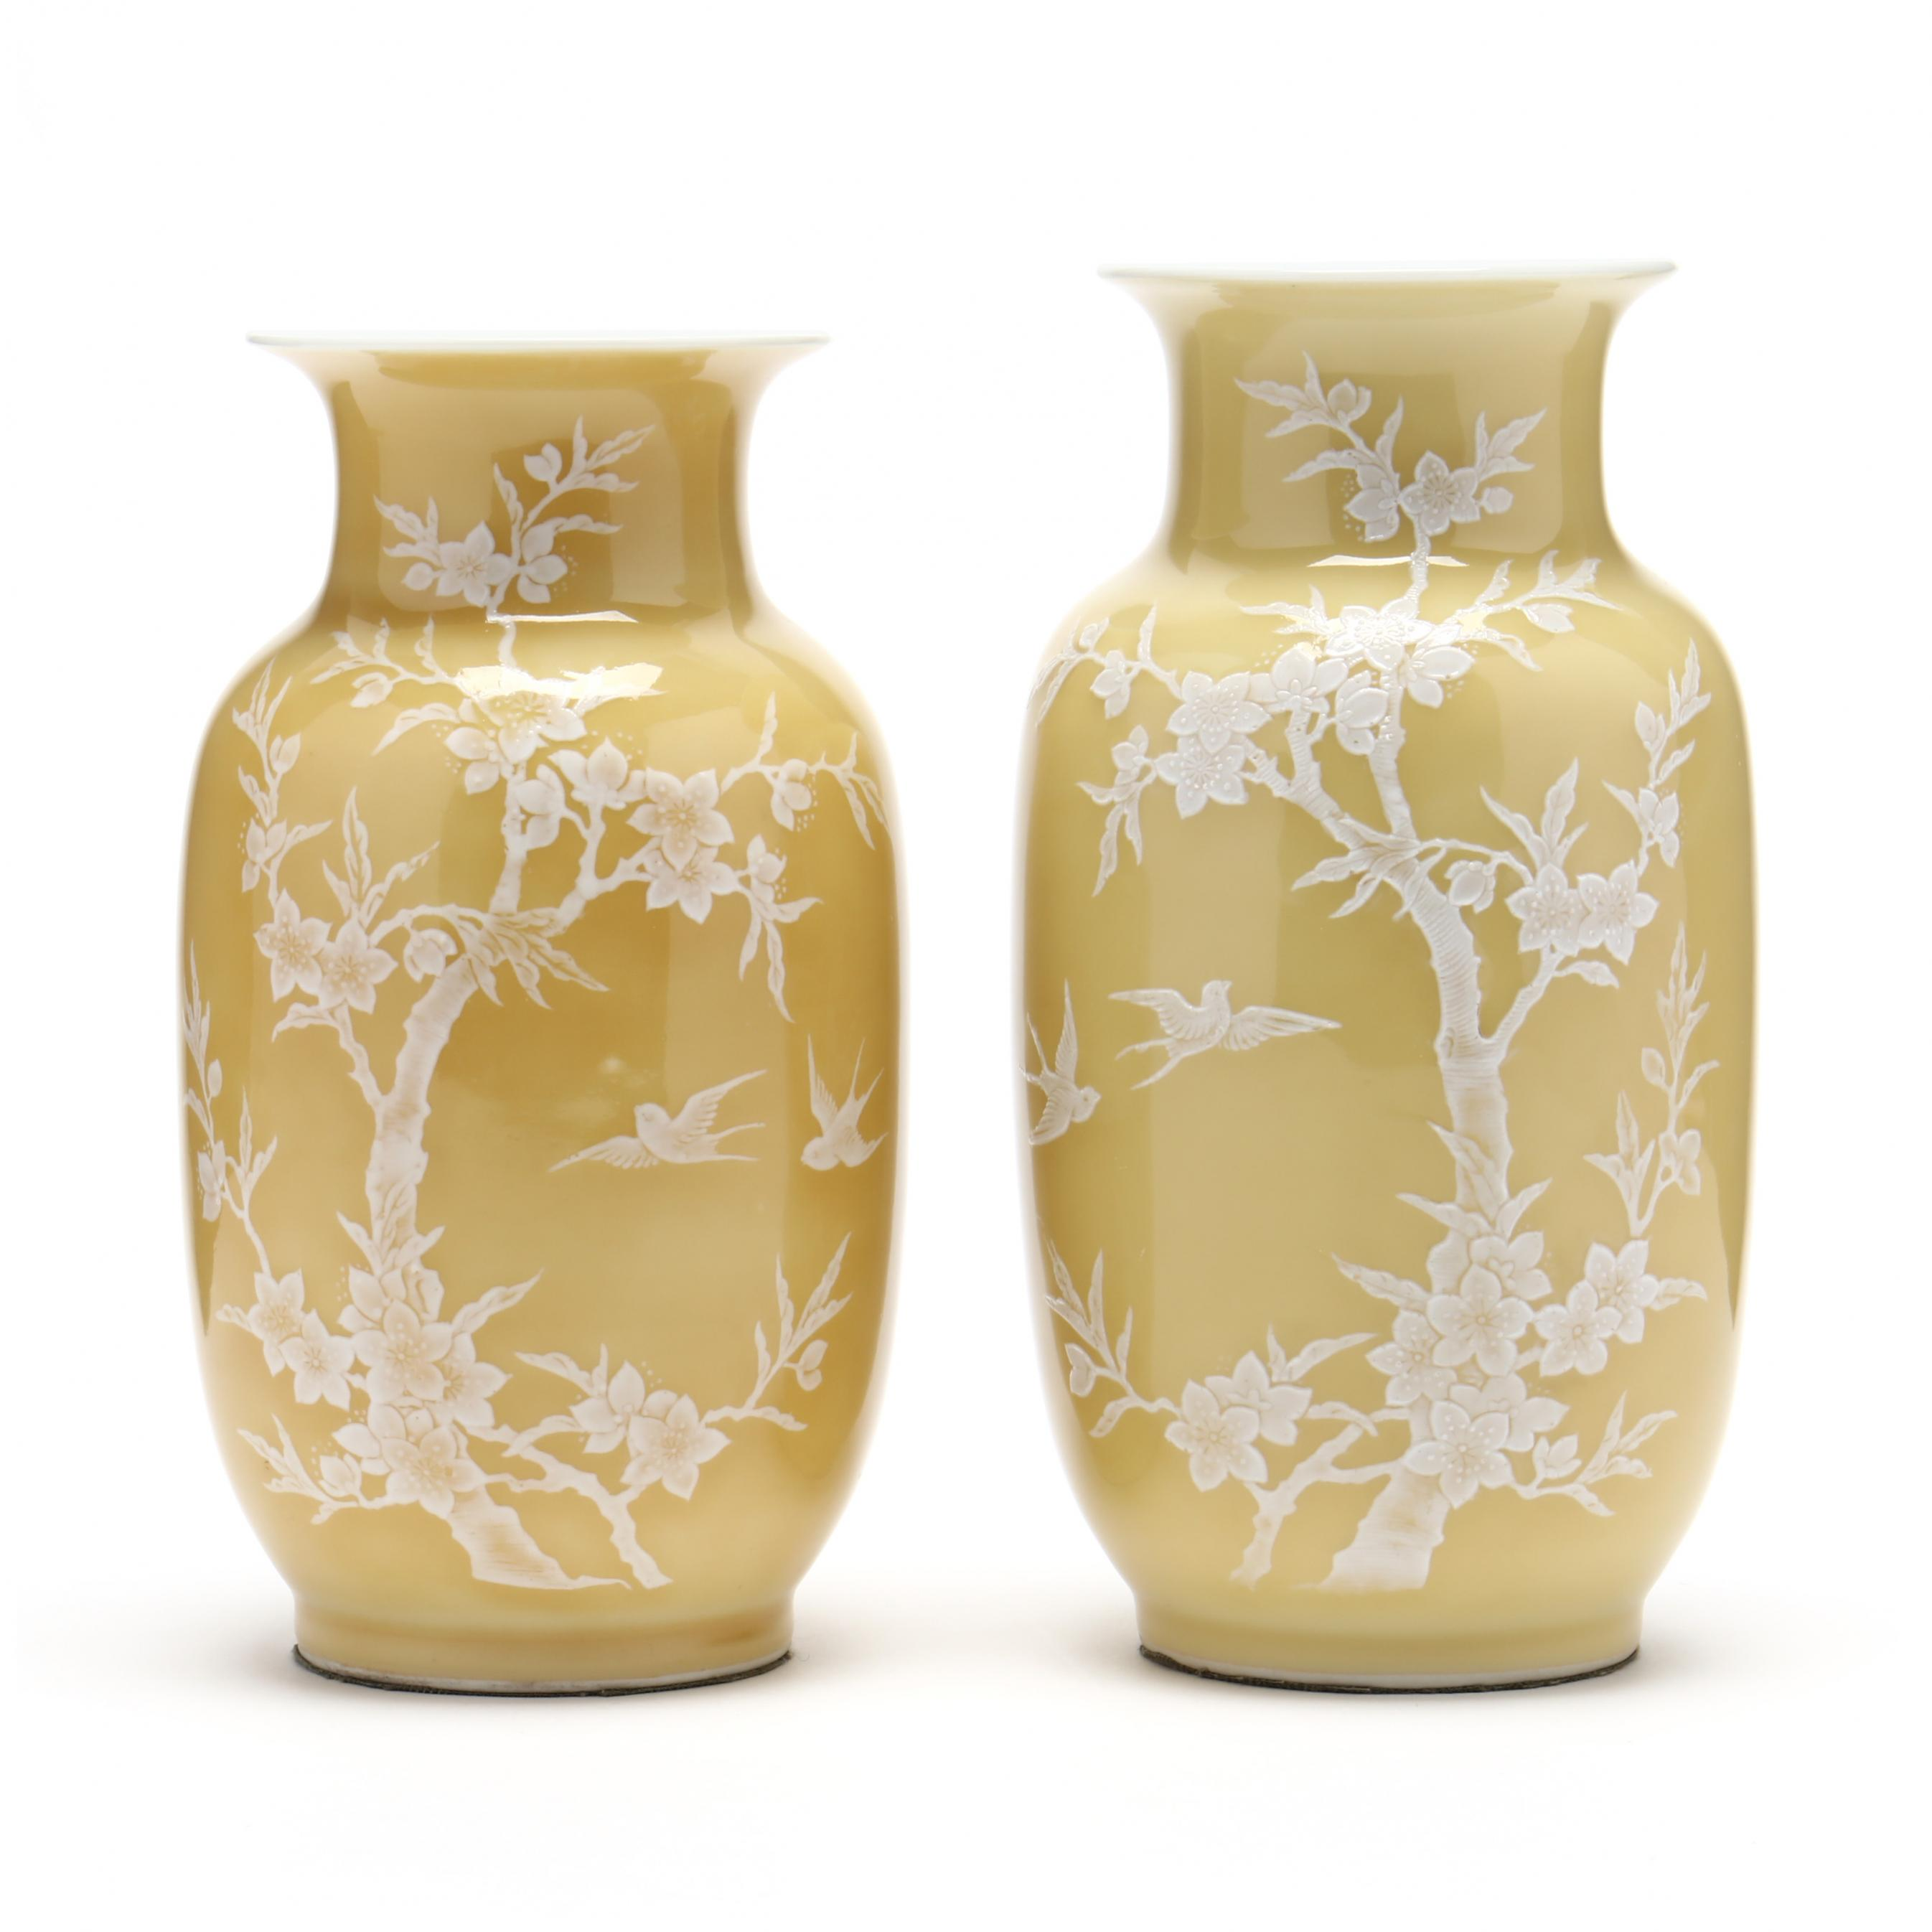 a-pair-of-chinese-yellow-vases